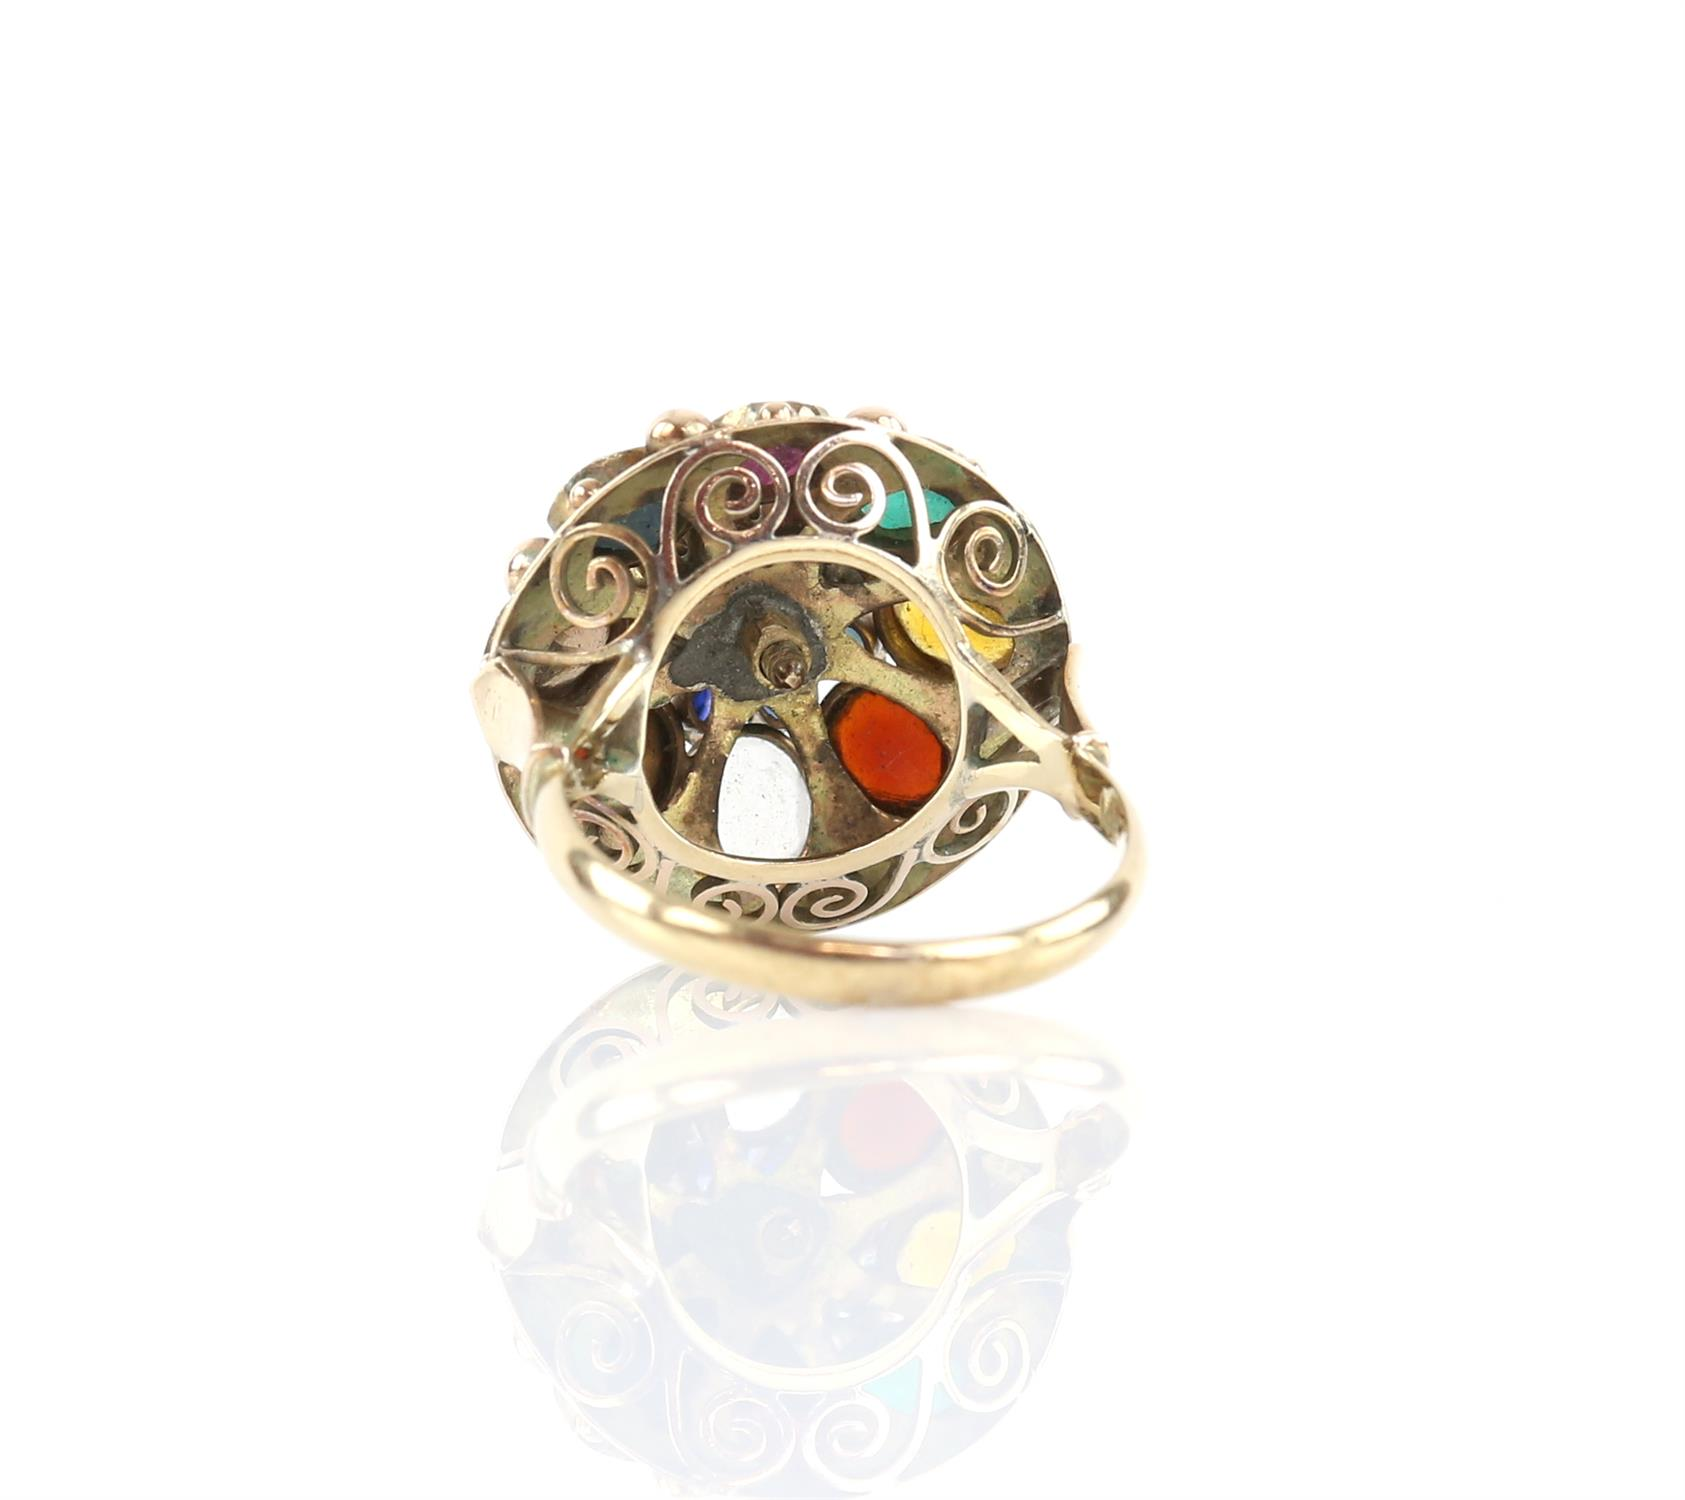 Gemstone set princess ring, set with round and oval cut sapphires, rubies, emeralds, tigers eye, - Image 3 of 3